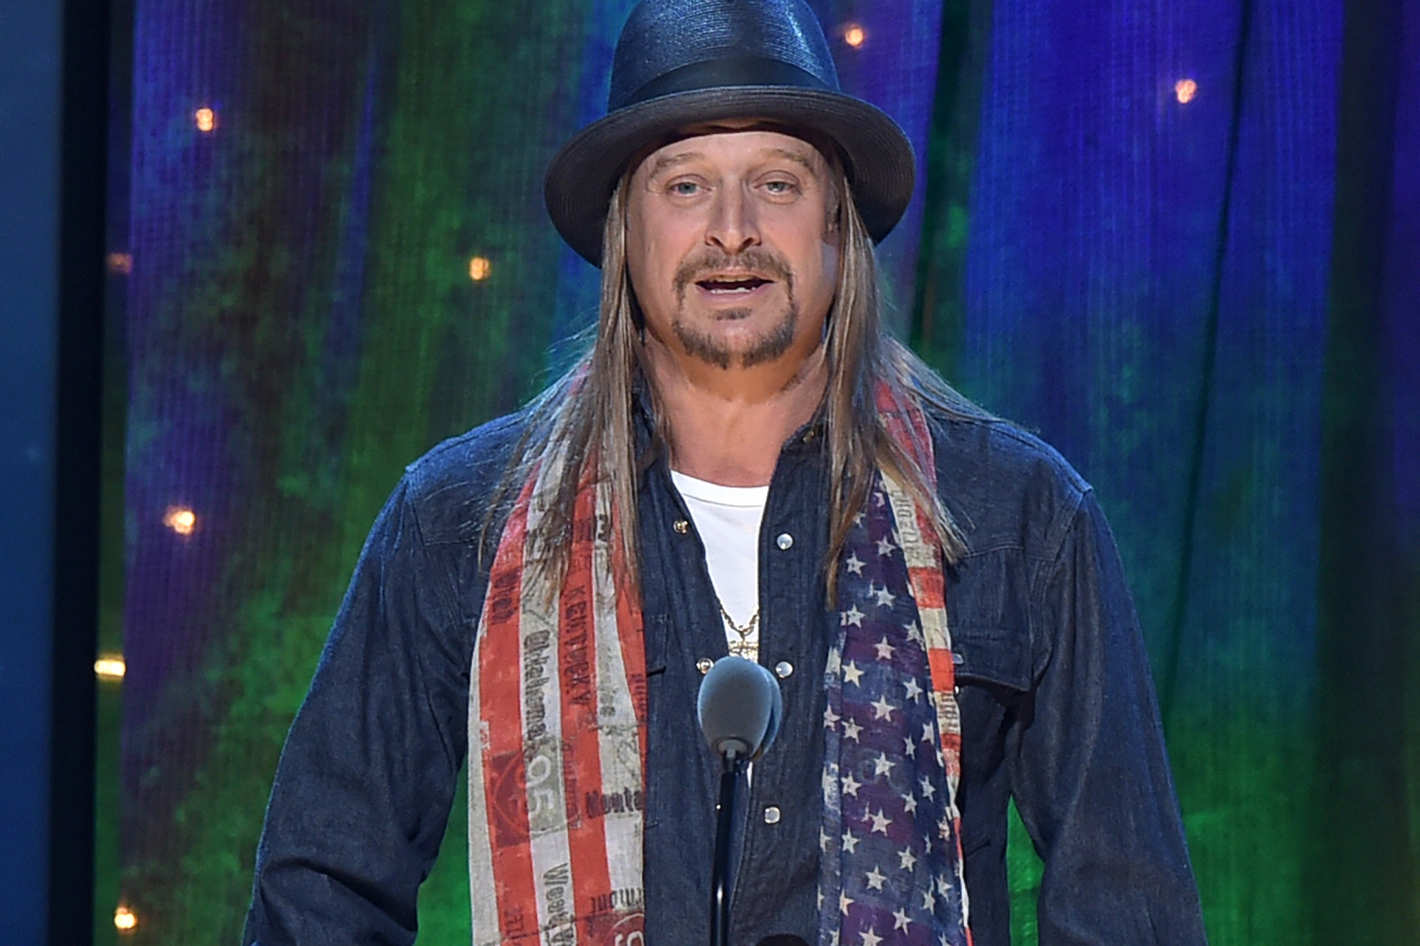 Kid Rock Leads Democrat In New Poll